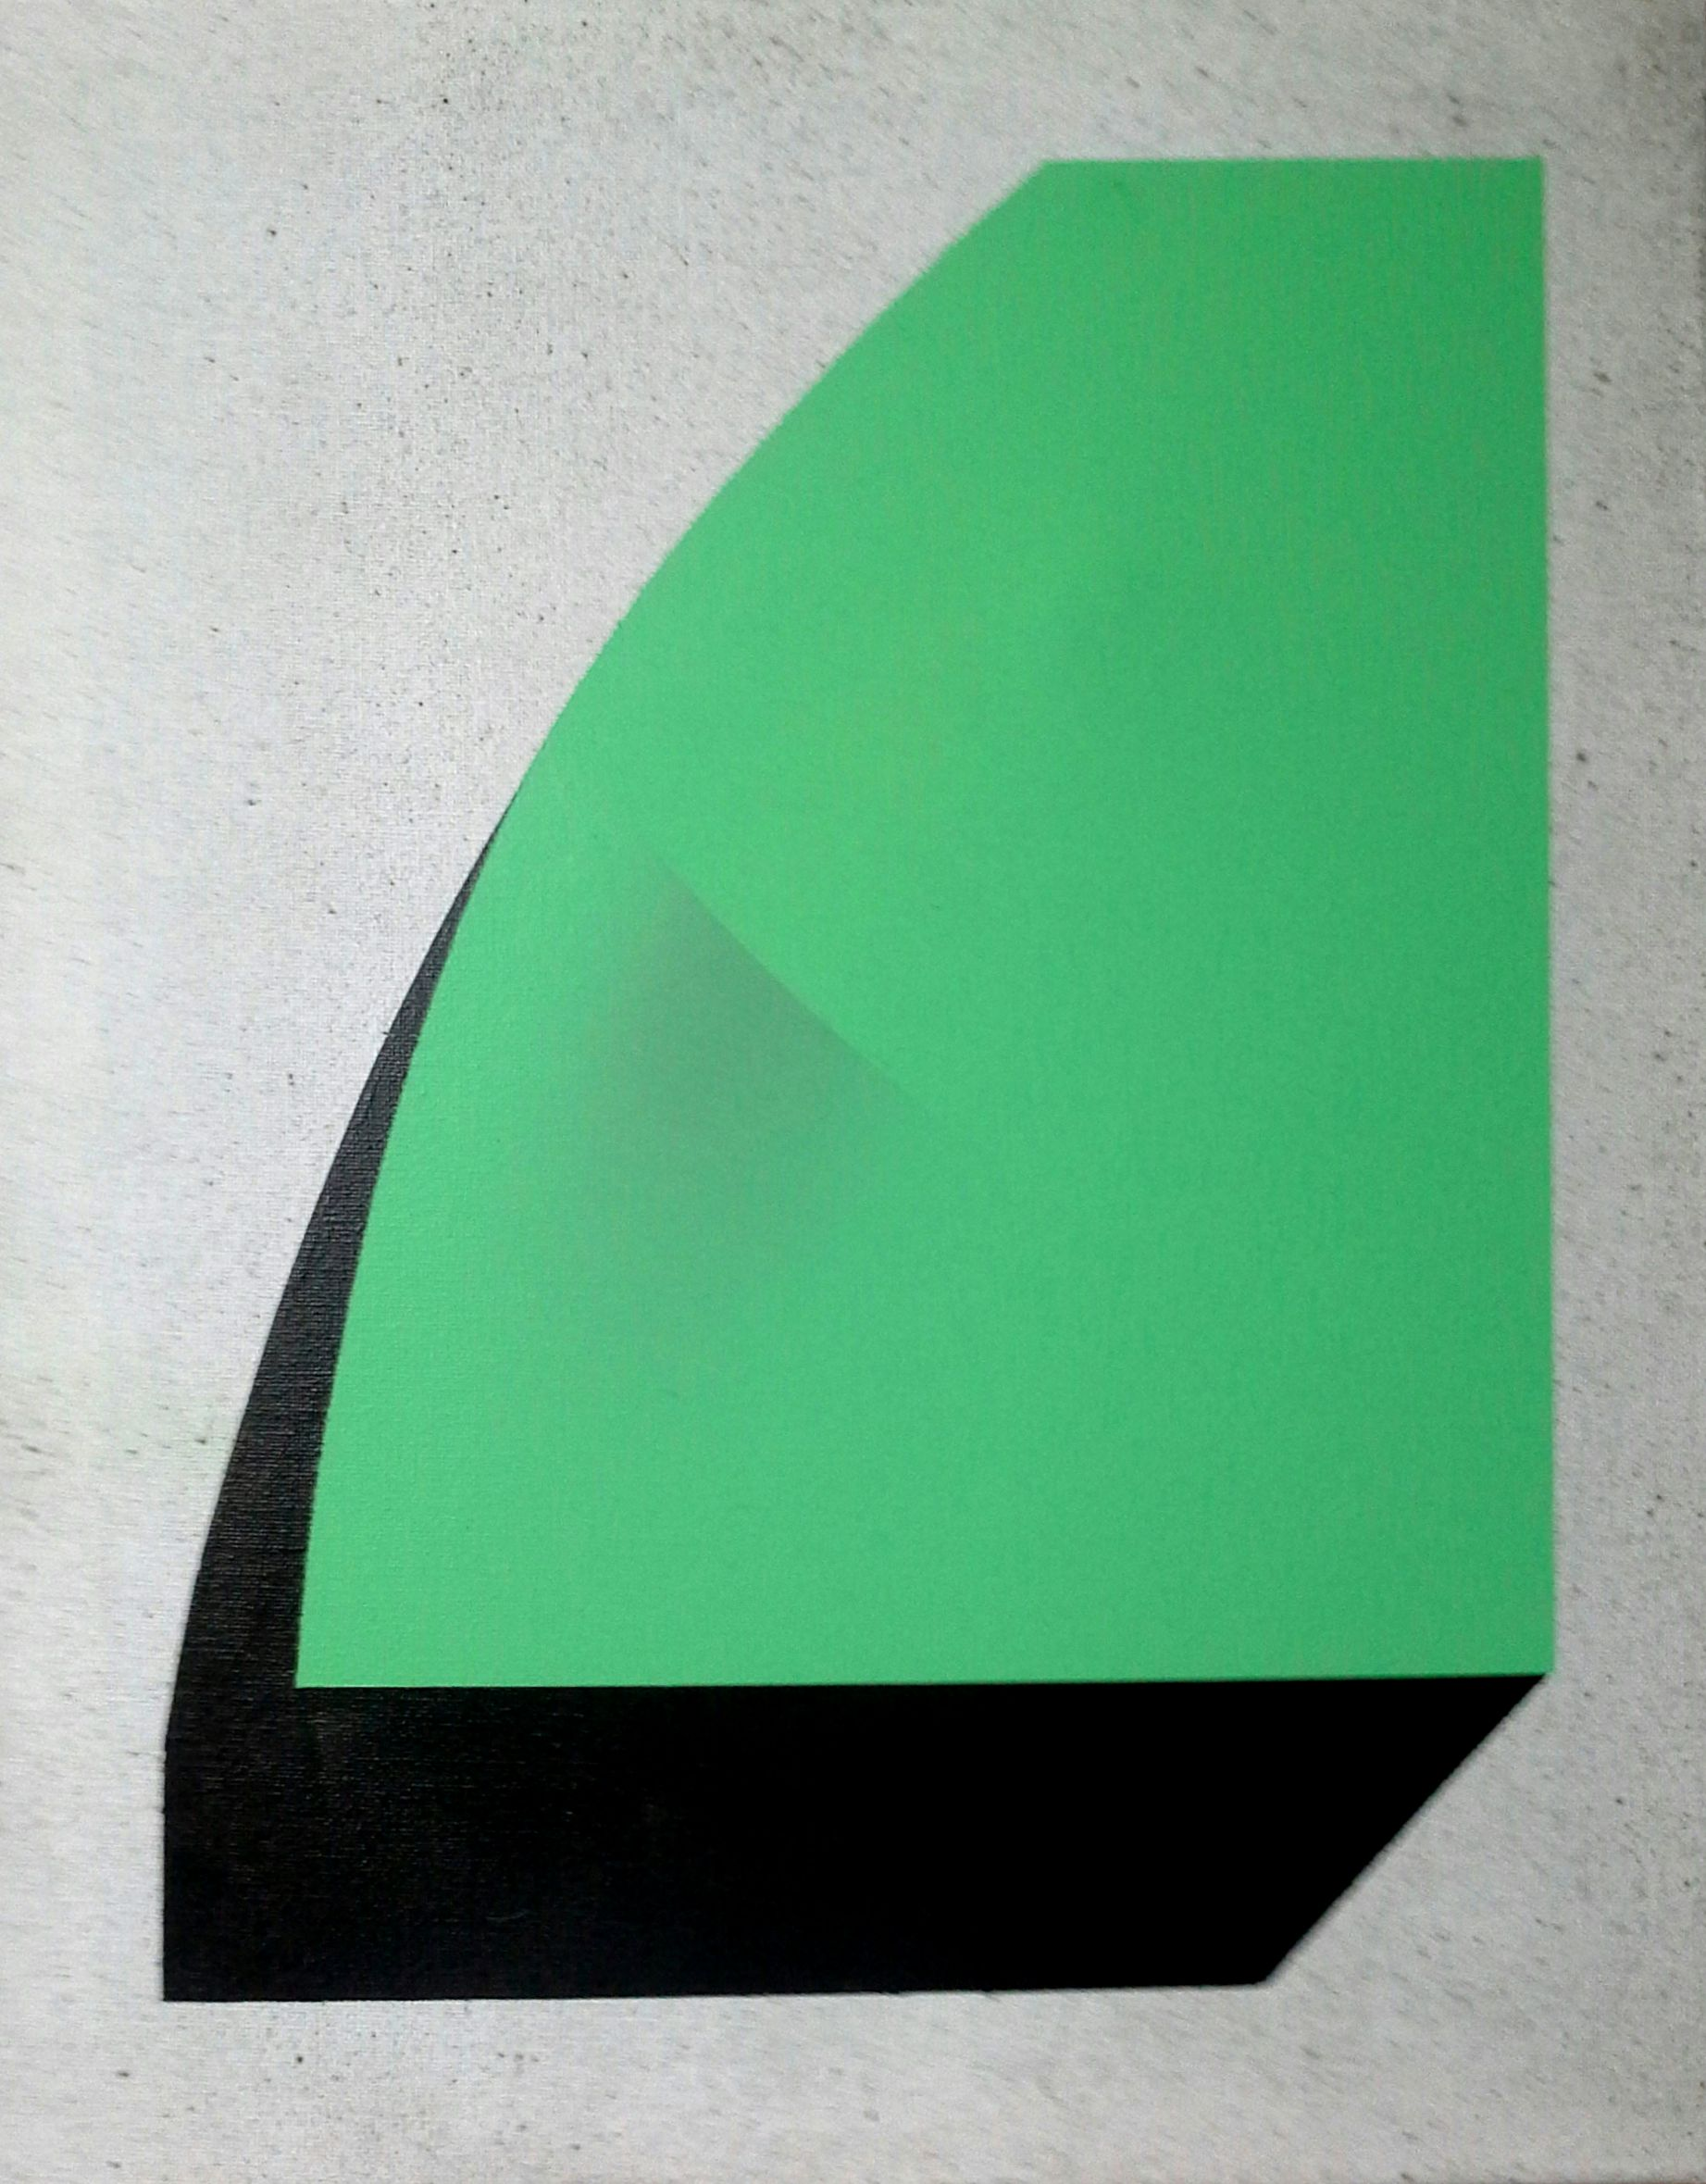 Sold - private collector